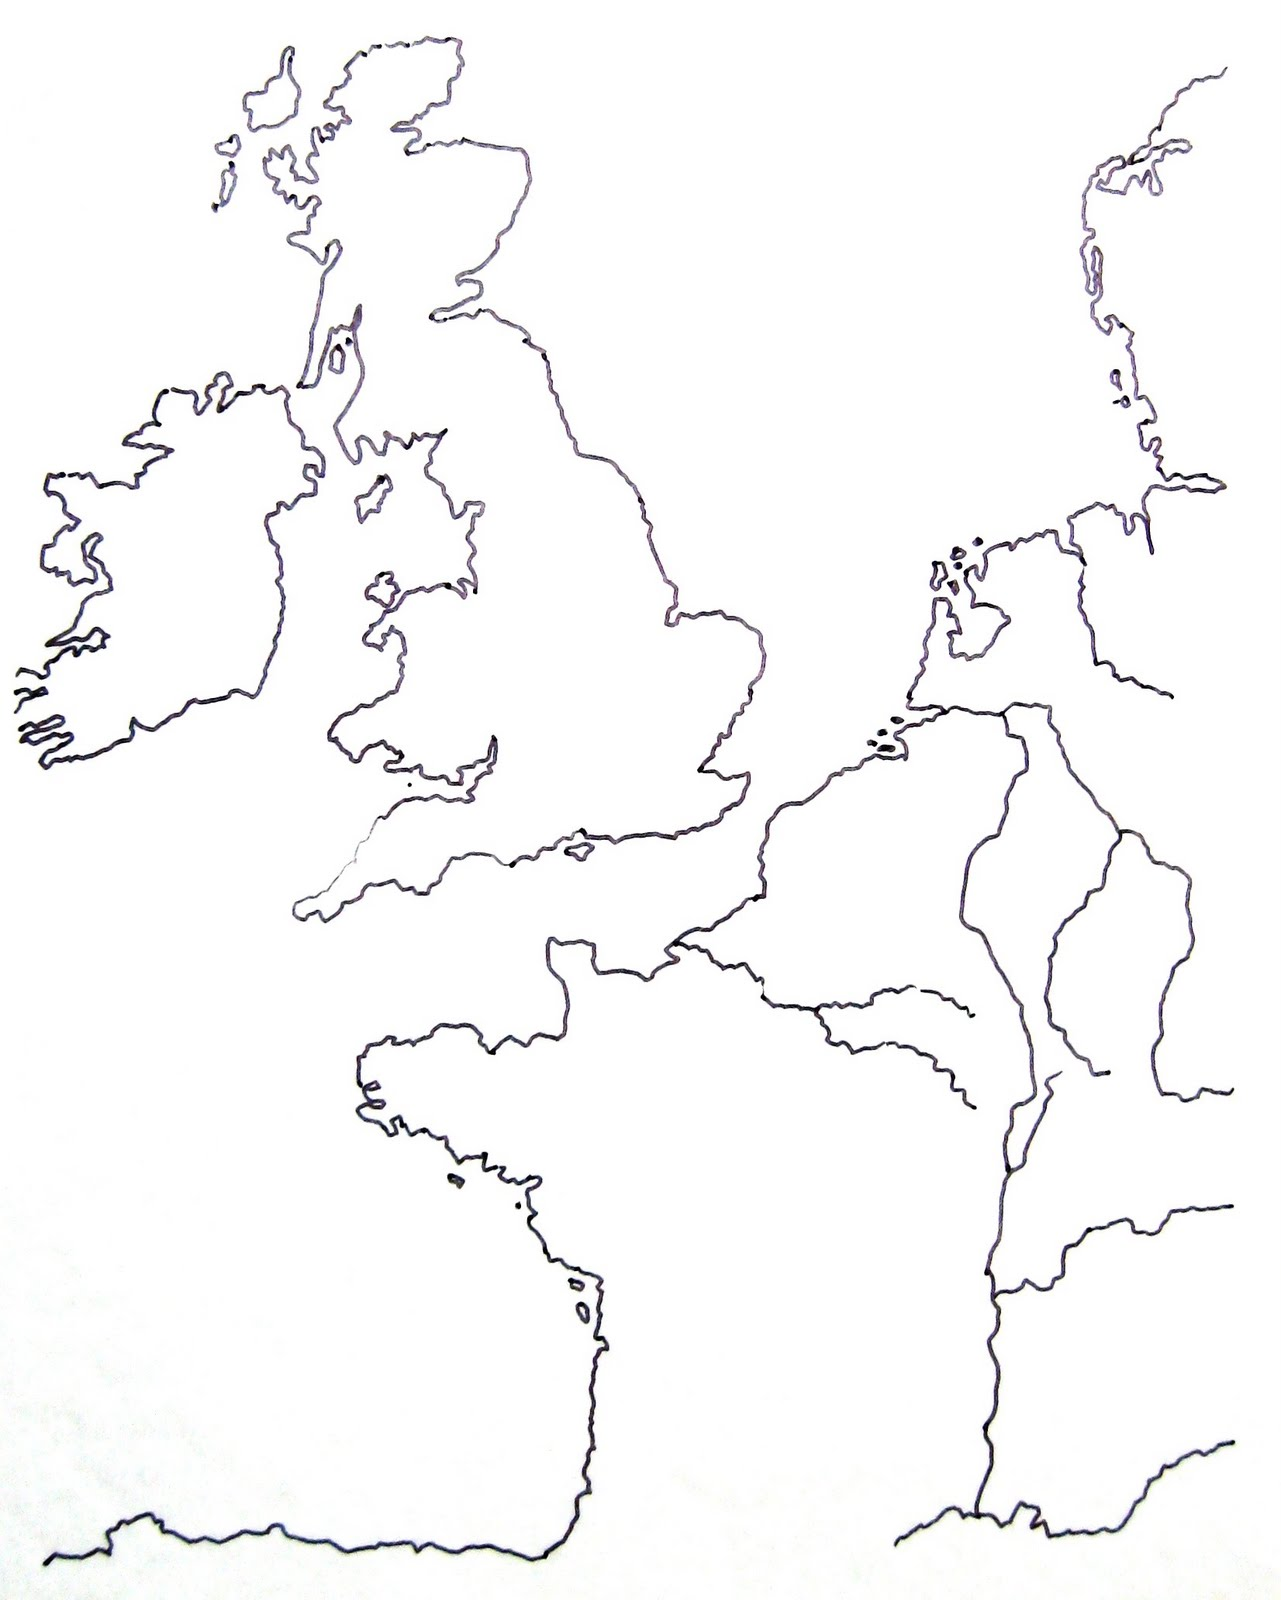 Christian Integration Blank Map of England